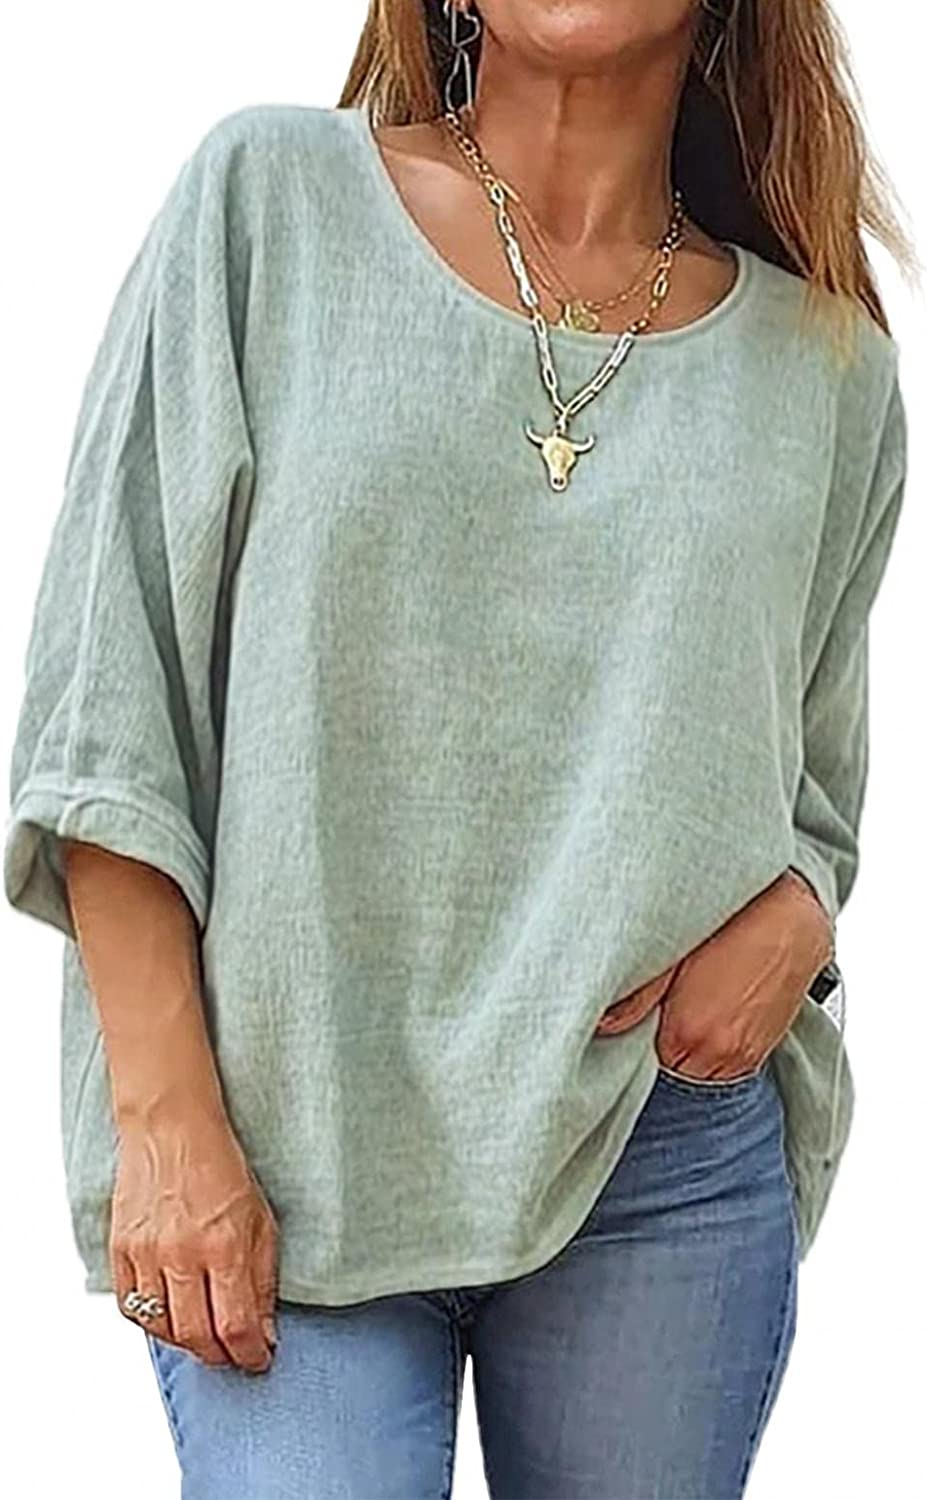 YUNDAN Womens 3/4 Sleeve Cotton Linen Shirts Casual Solid Loose Fit Basic Round Neck Tops Jacquard Comfy Blouses Tunic